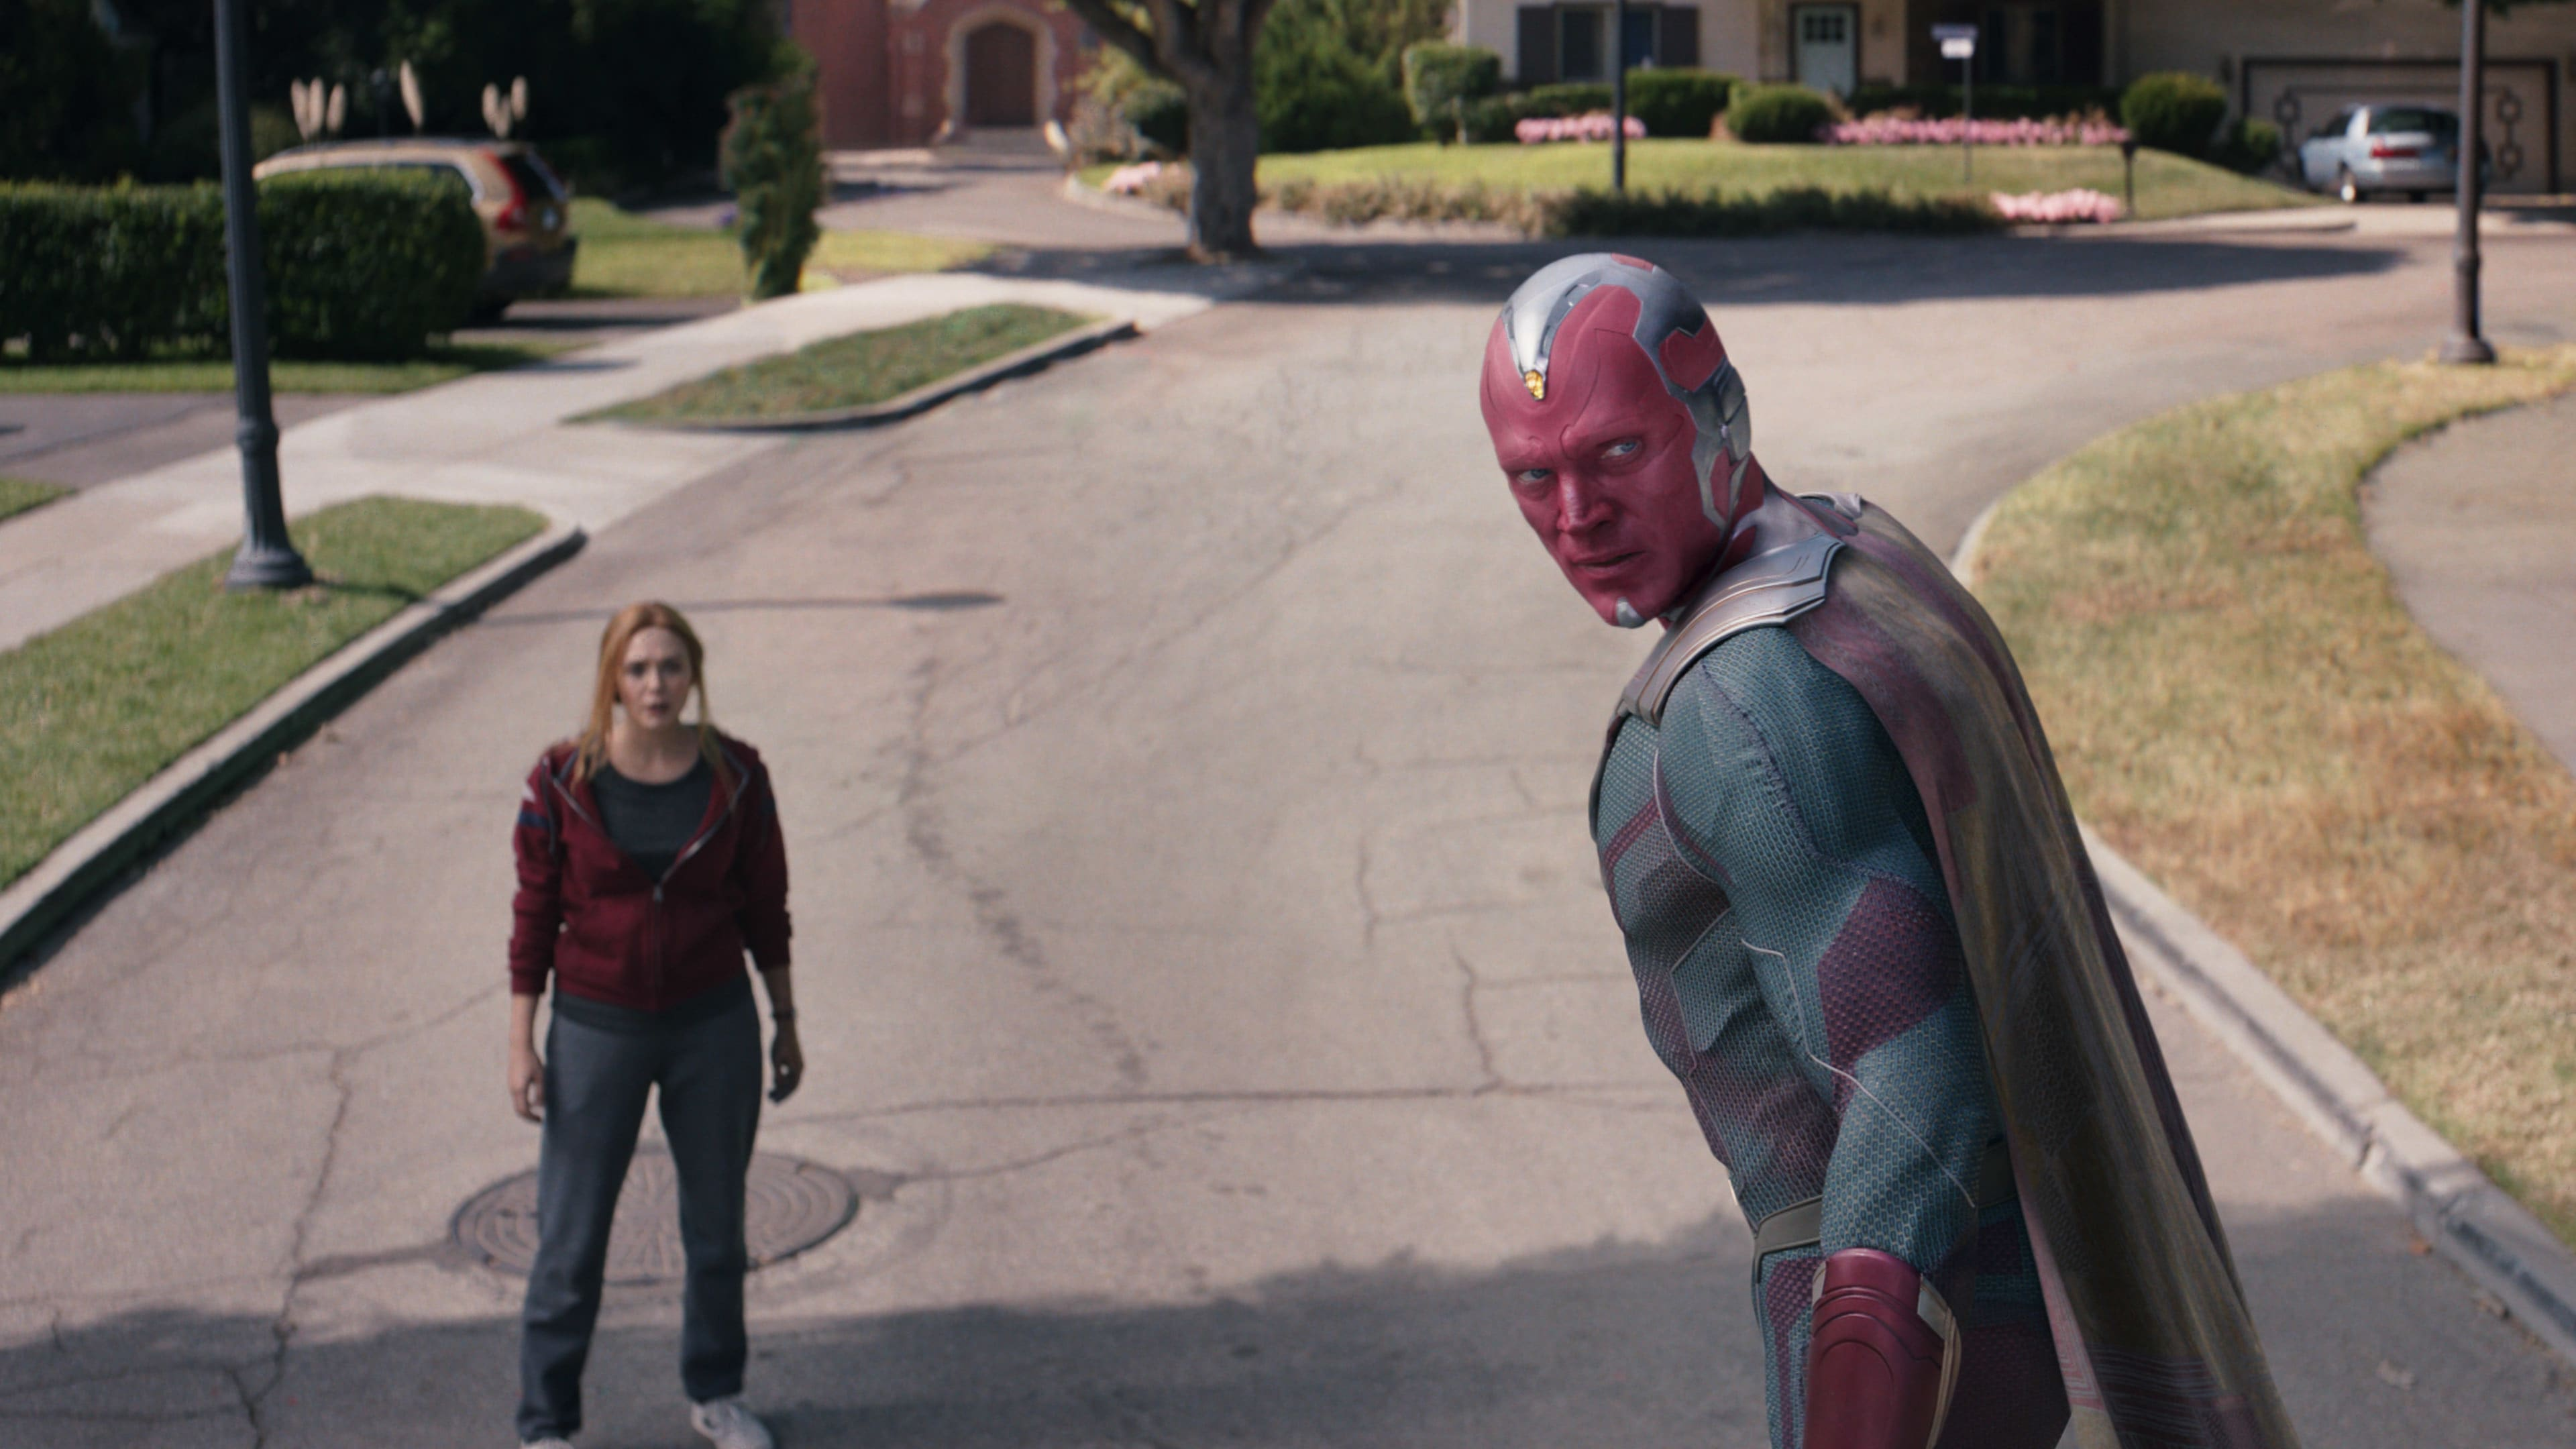 Elizabeth Olsen as Wanda Maximoff and Paul Bettany as Vision in Marvel Studios' WANDAVISION exclusively on Disney+. Photo courtesy of Marvel Studios. ©Marvel Studios 2021. All Rights Reserved.